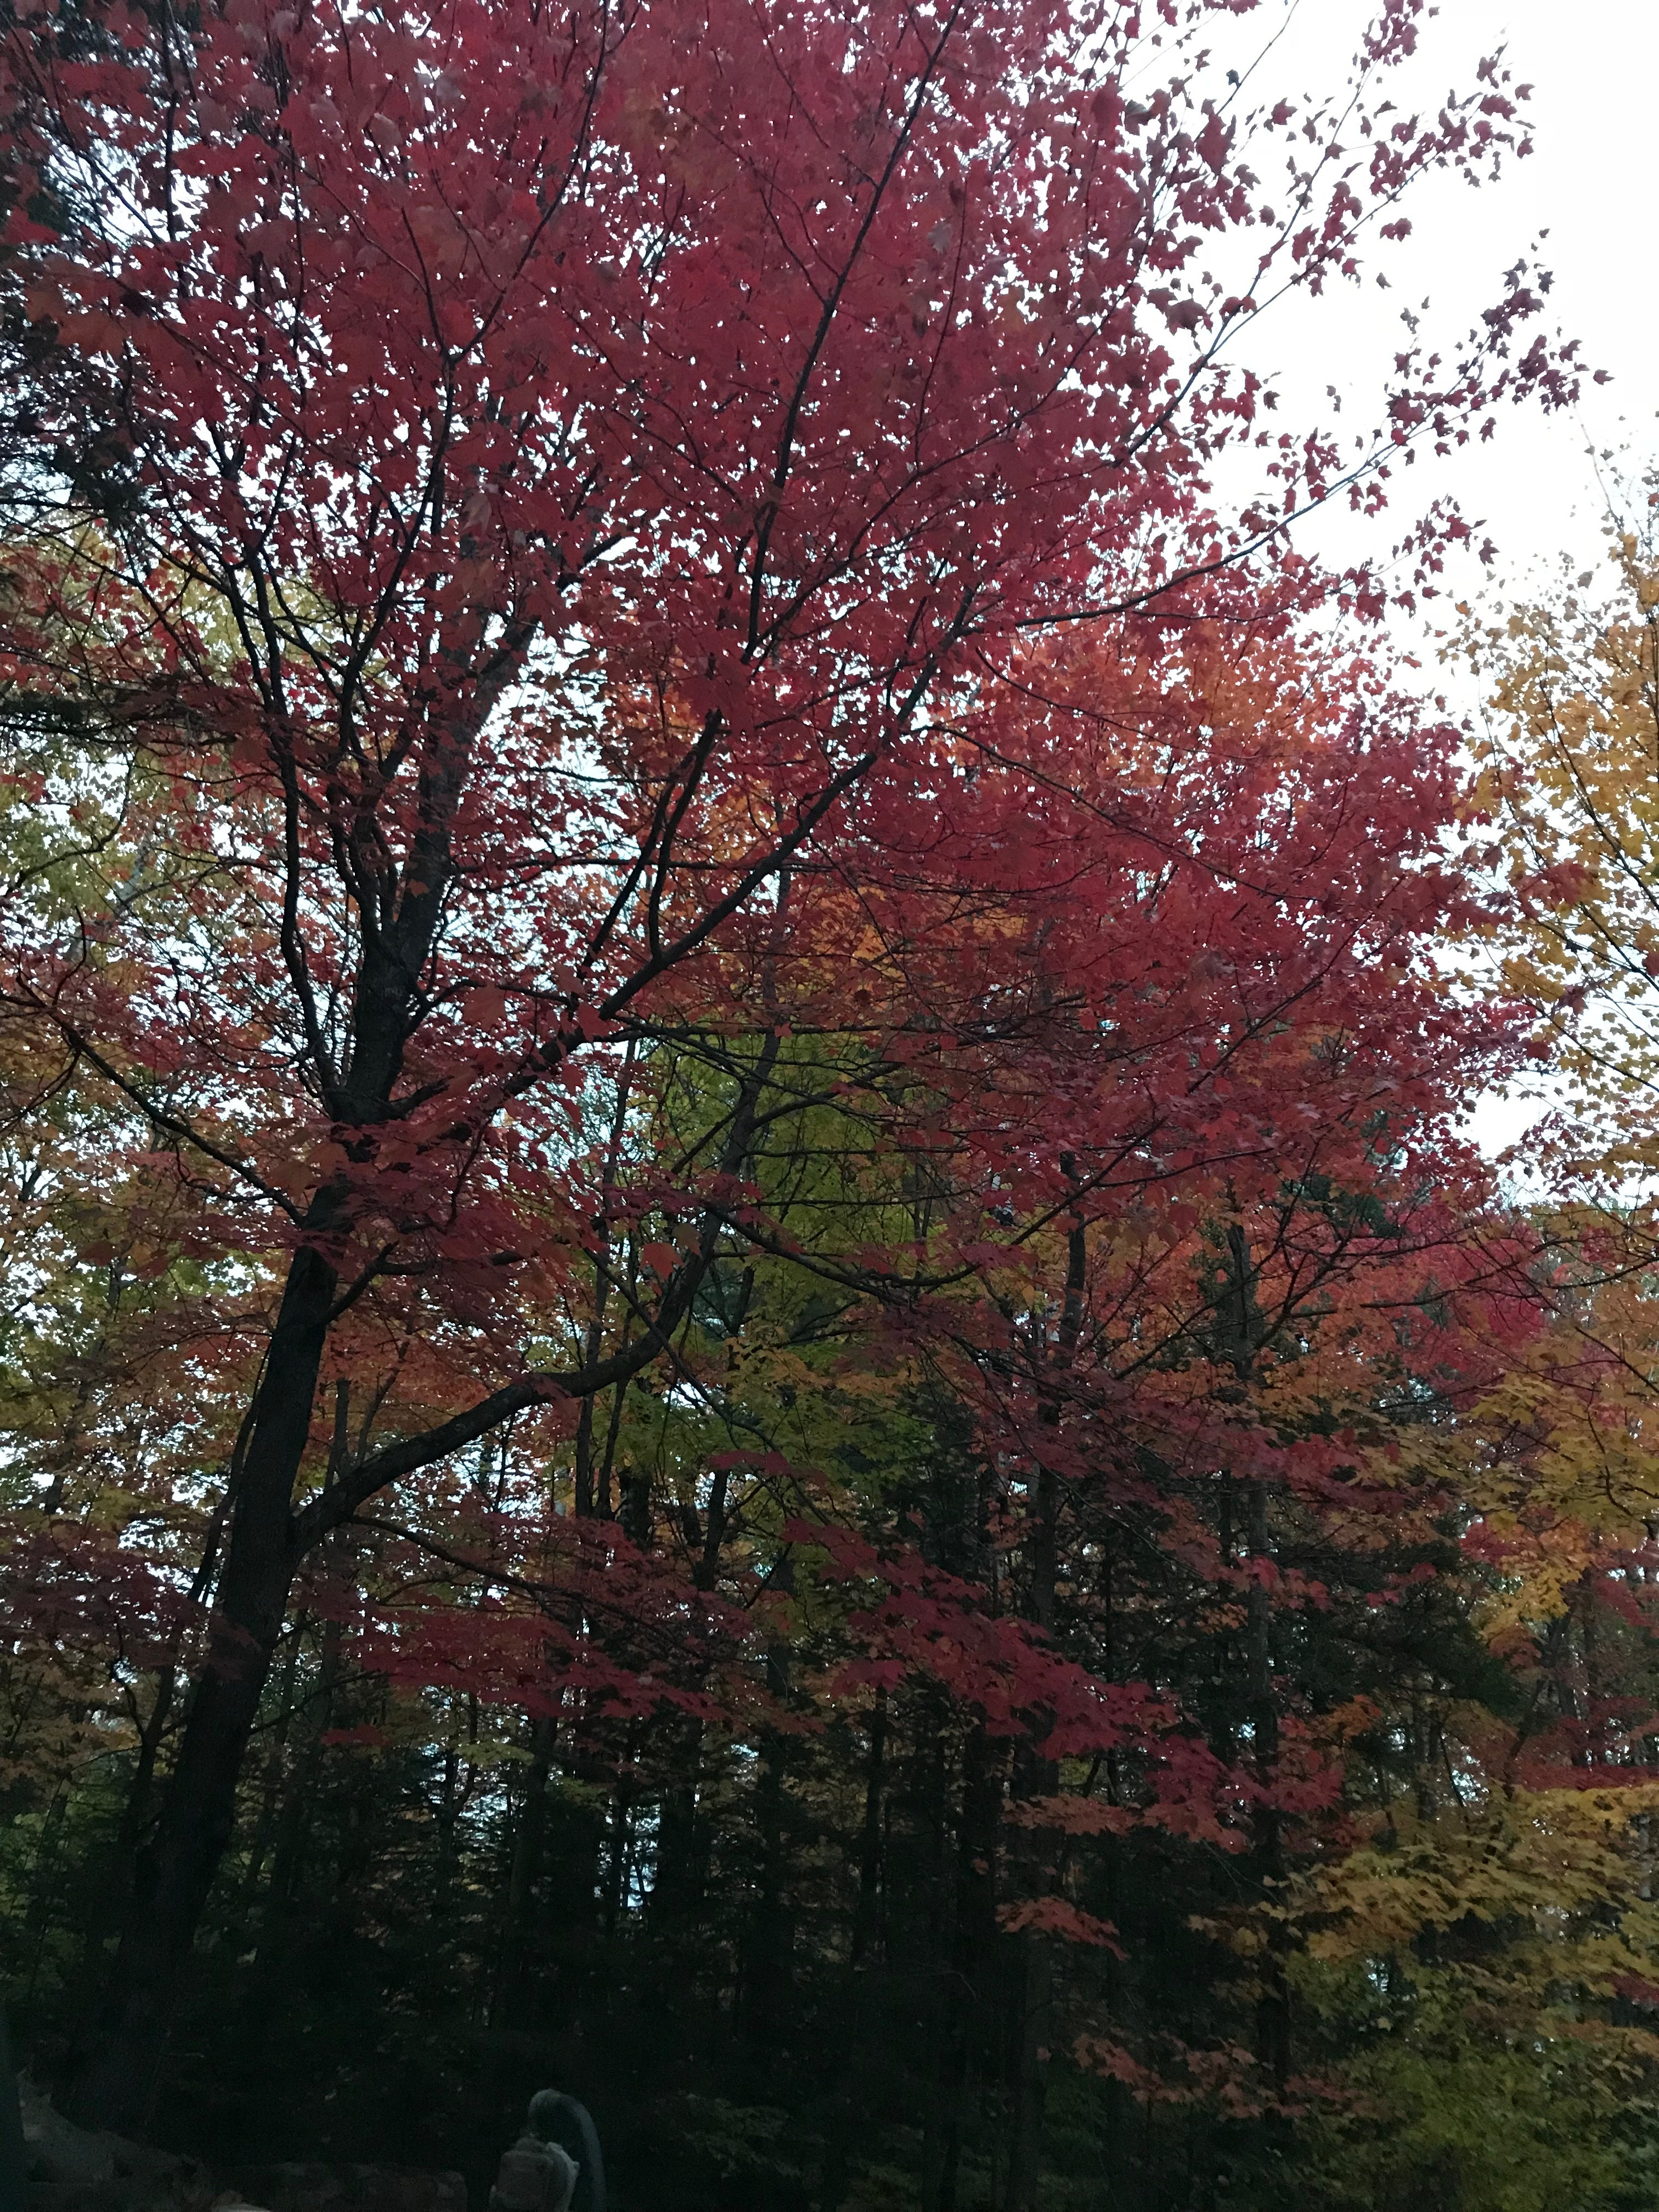 Free stock photo of fall, maple tree, red maple leaves